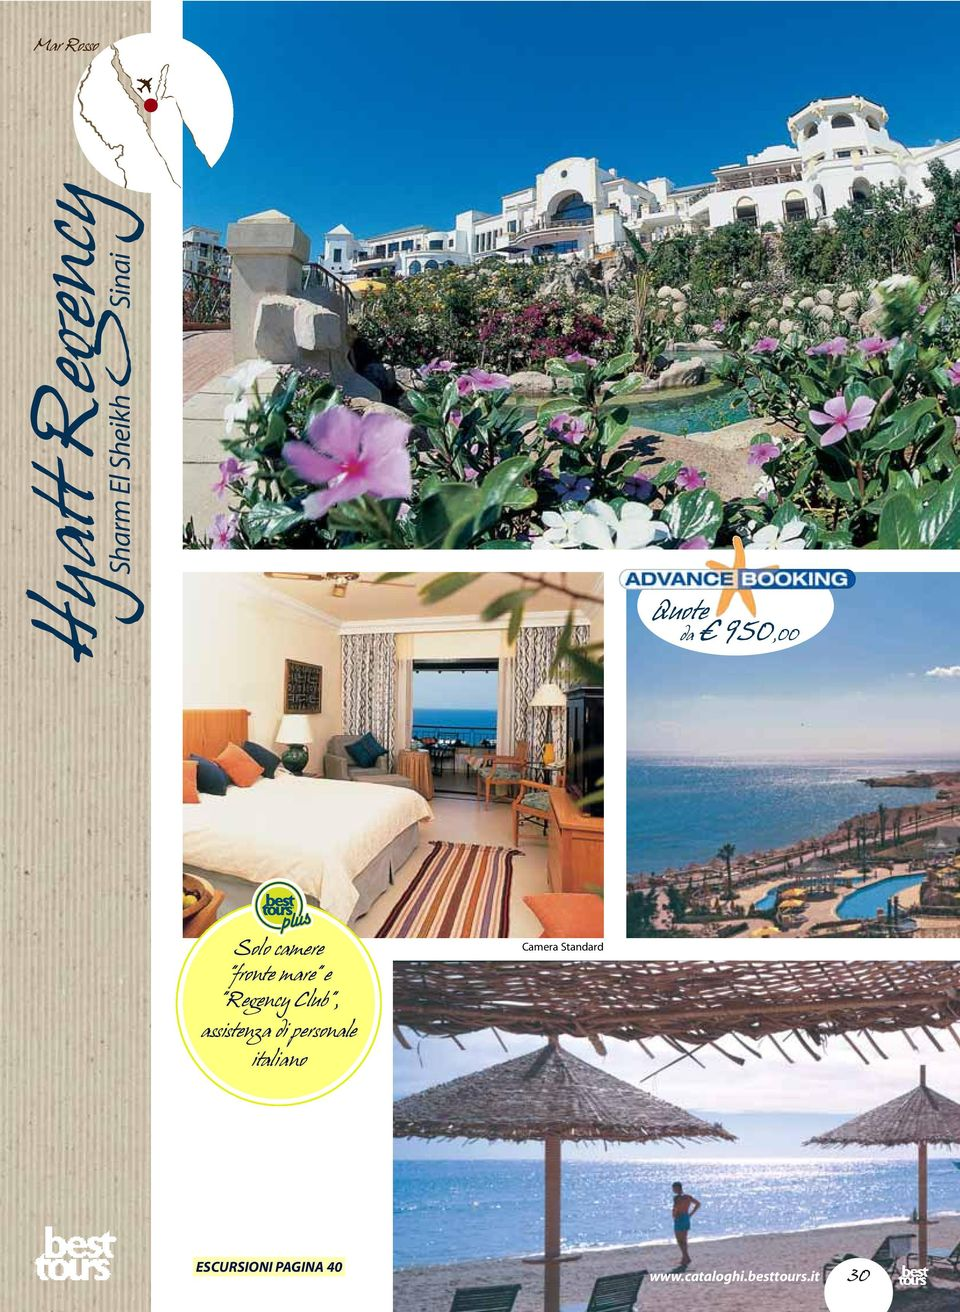 mare e Regency Club, assistenza di